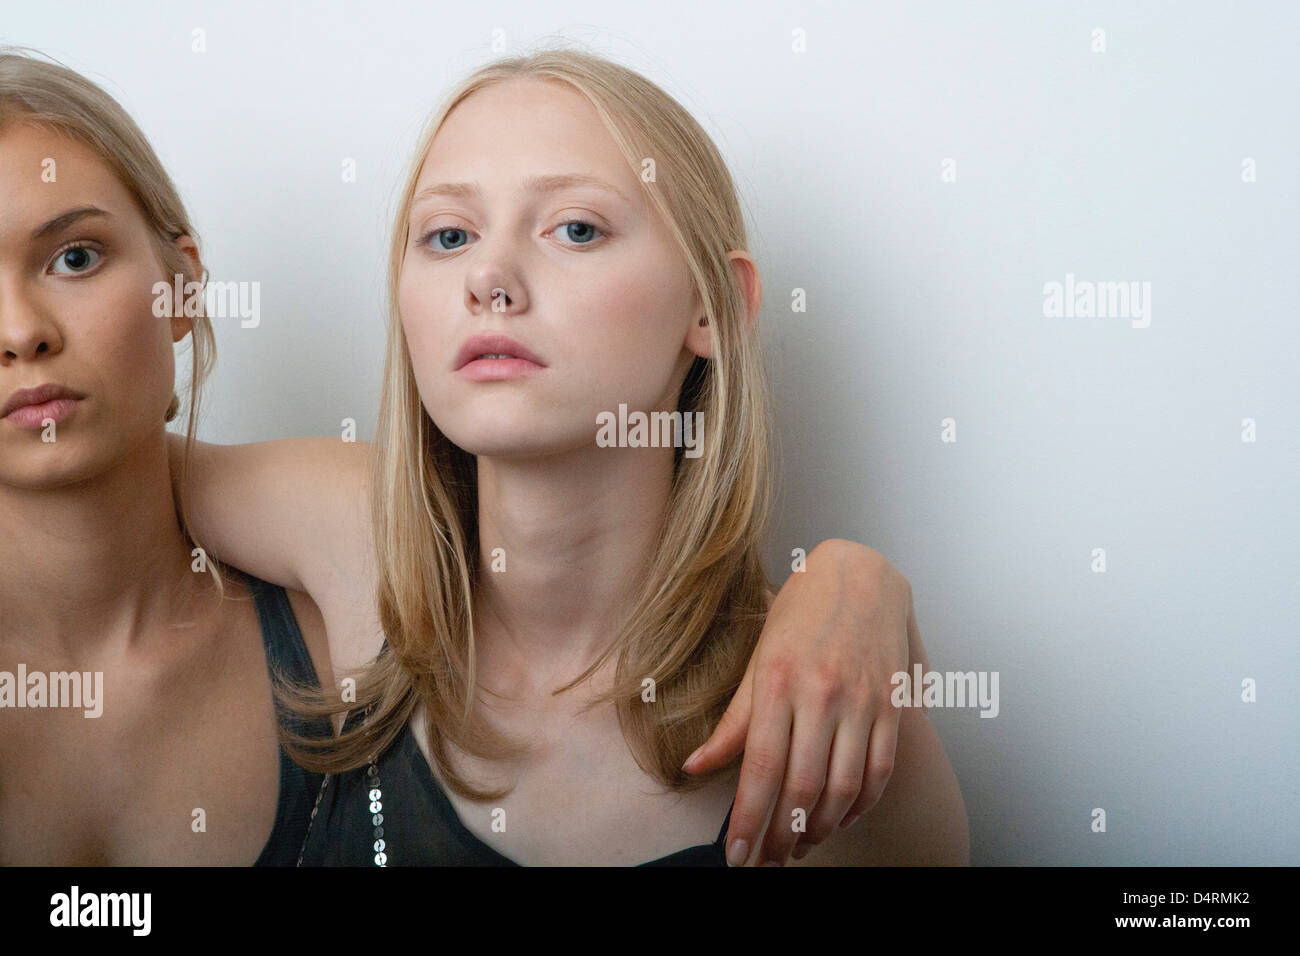 Young woman with arm around girlfriend's shoulder, portrait - Stock Image